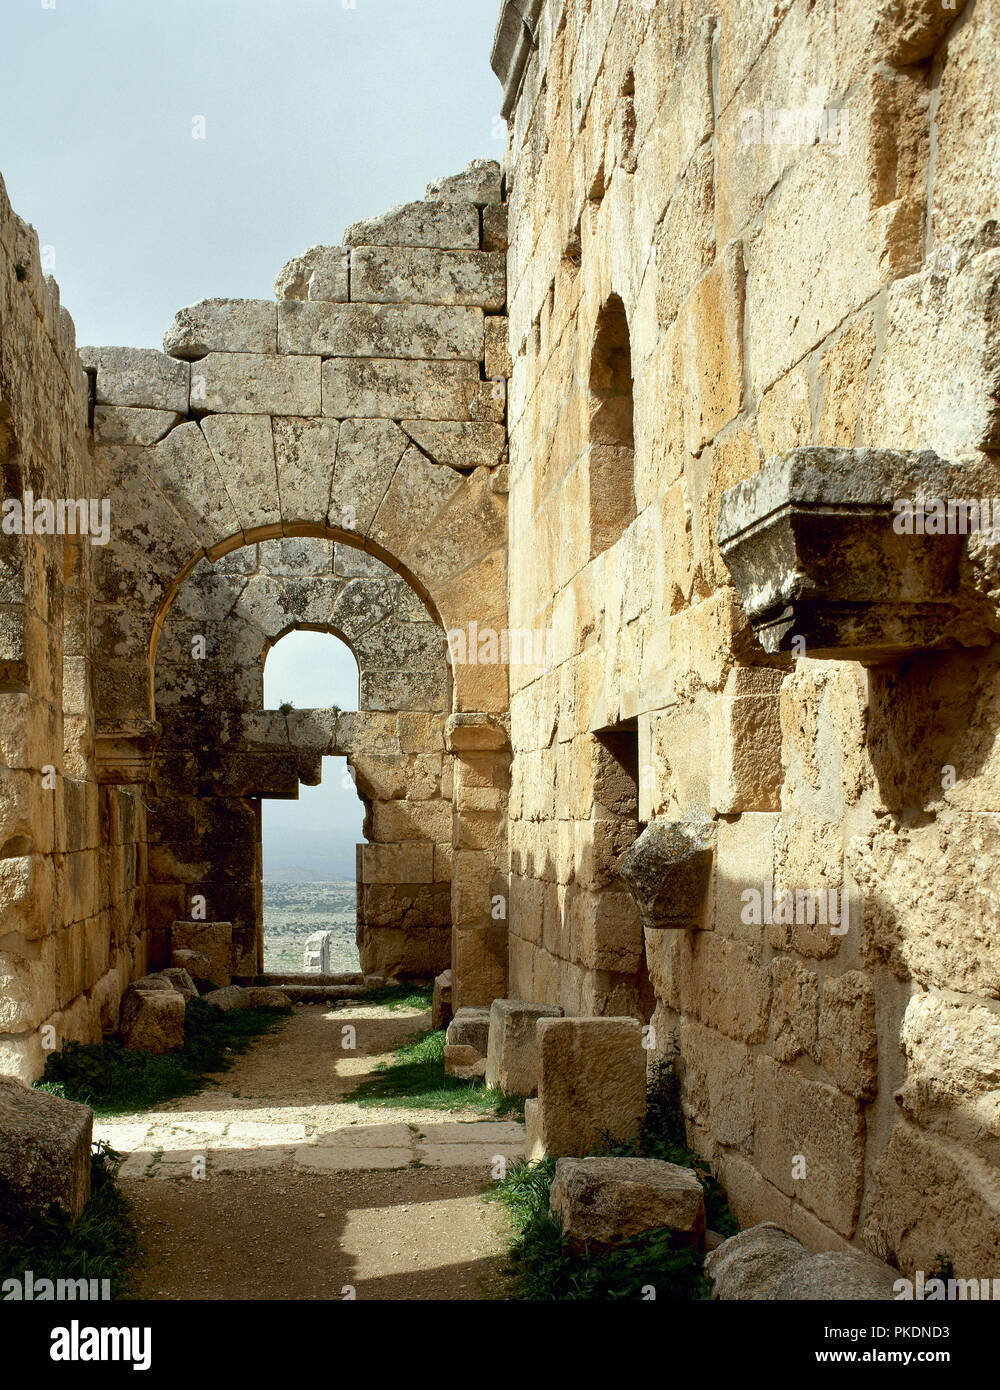 Church of St Simeon Stylites, 475. It was built on the site of the pillar of St. Simeon. Architectural detail of the chapel and the inn, near the hill. Aleppo. Syria. Historical photography (before Syrian Civil War). - Stock Image